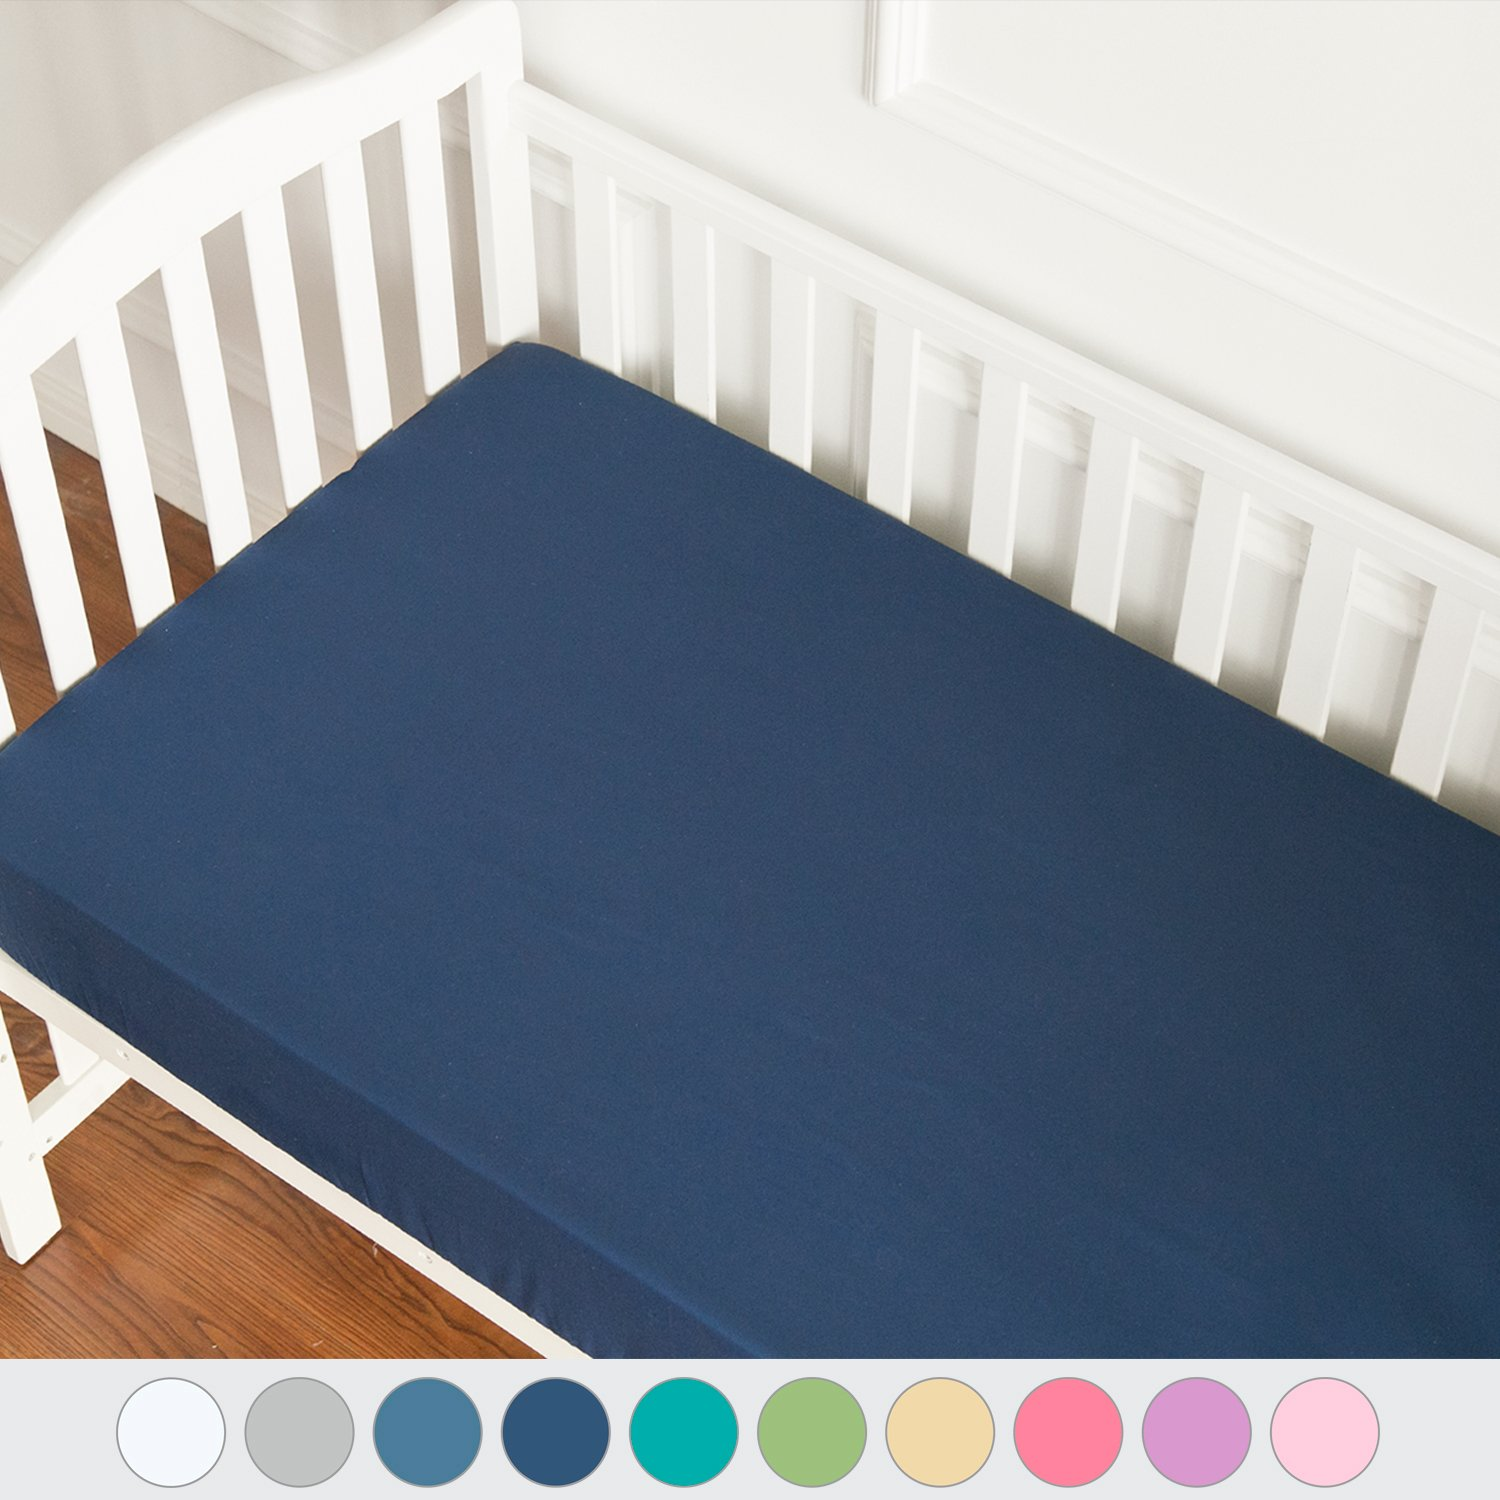 """TILLYOU Microfiber Silky Soft Crib Sheets Boy, Fitted Toddler Mattress Sheets, Breathable Soft Cozy Hypoallergenic Baby Sheet, Navy Blue 28""""x52"""""""